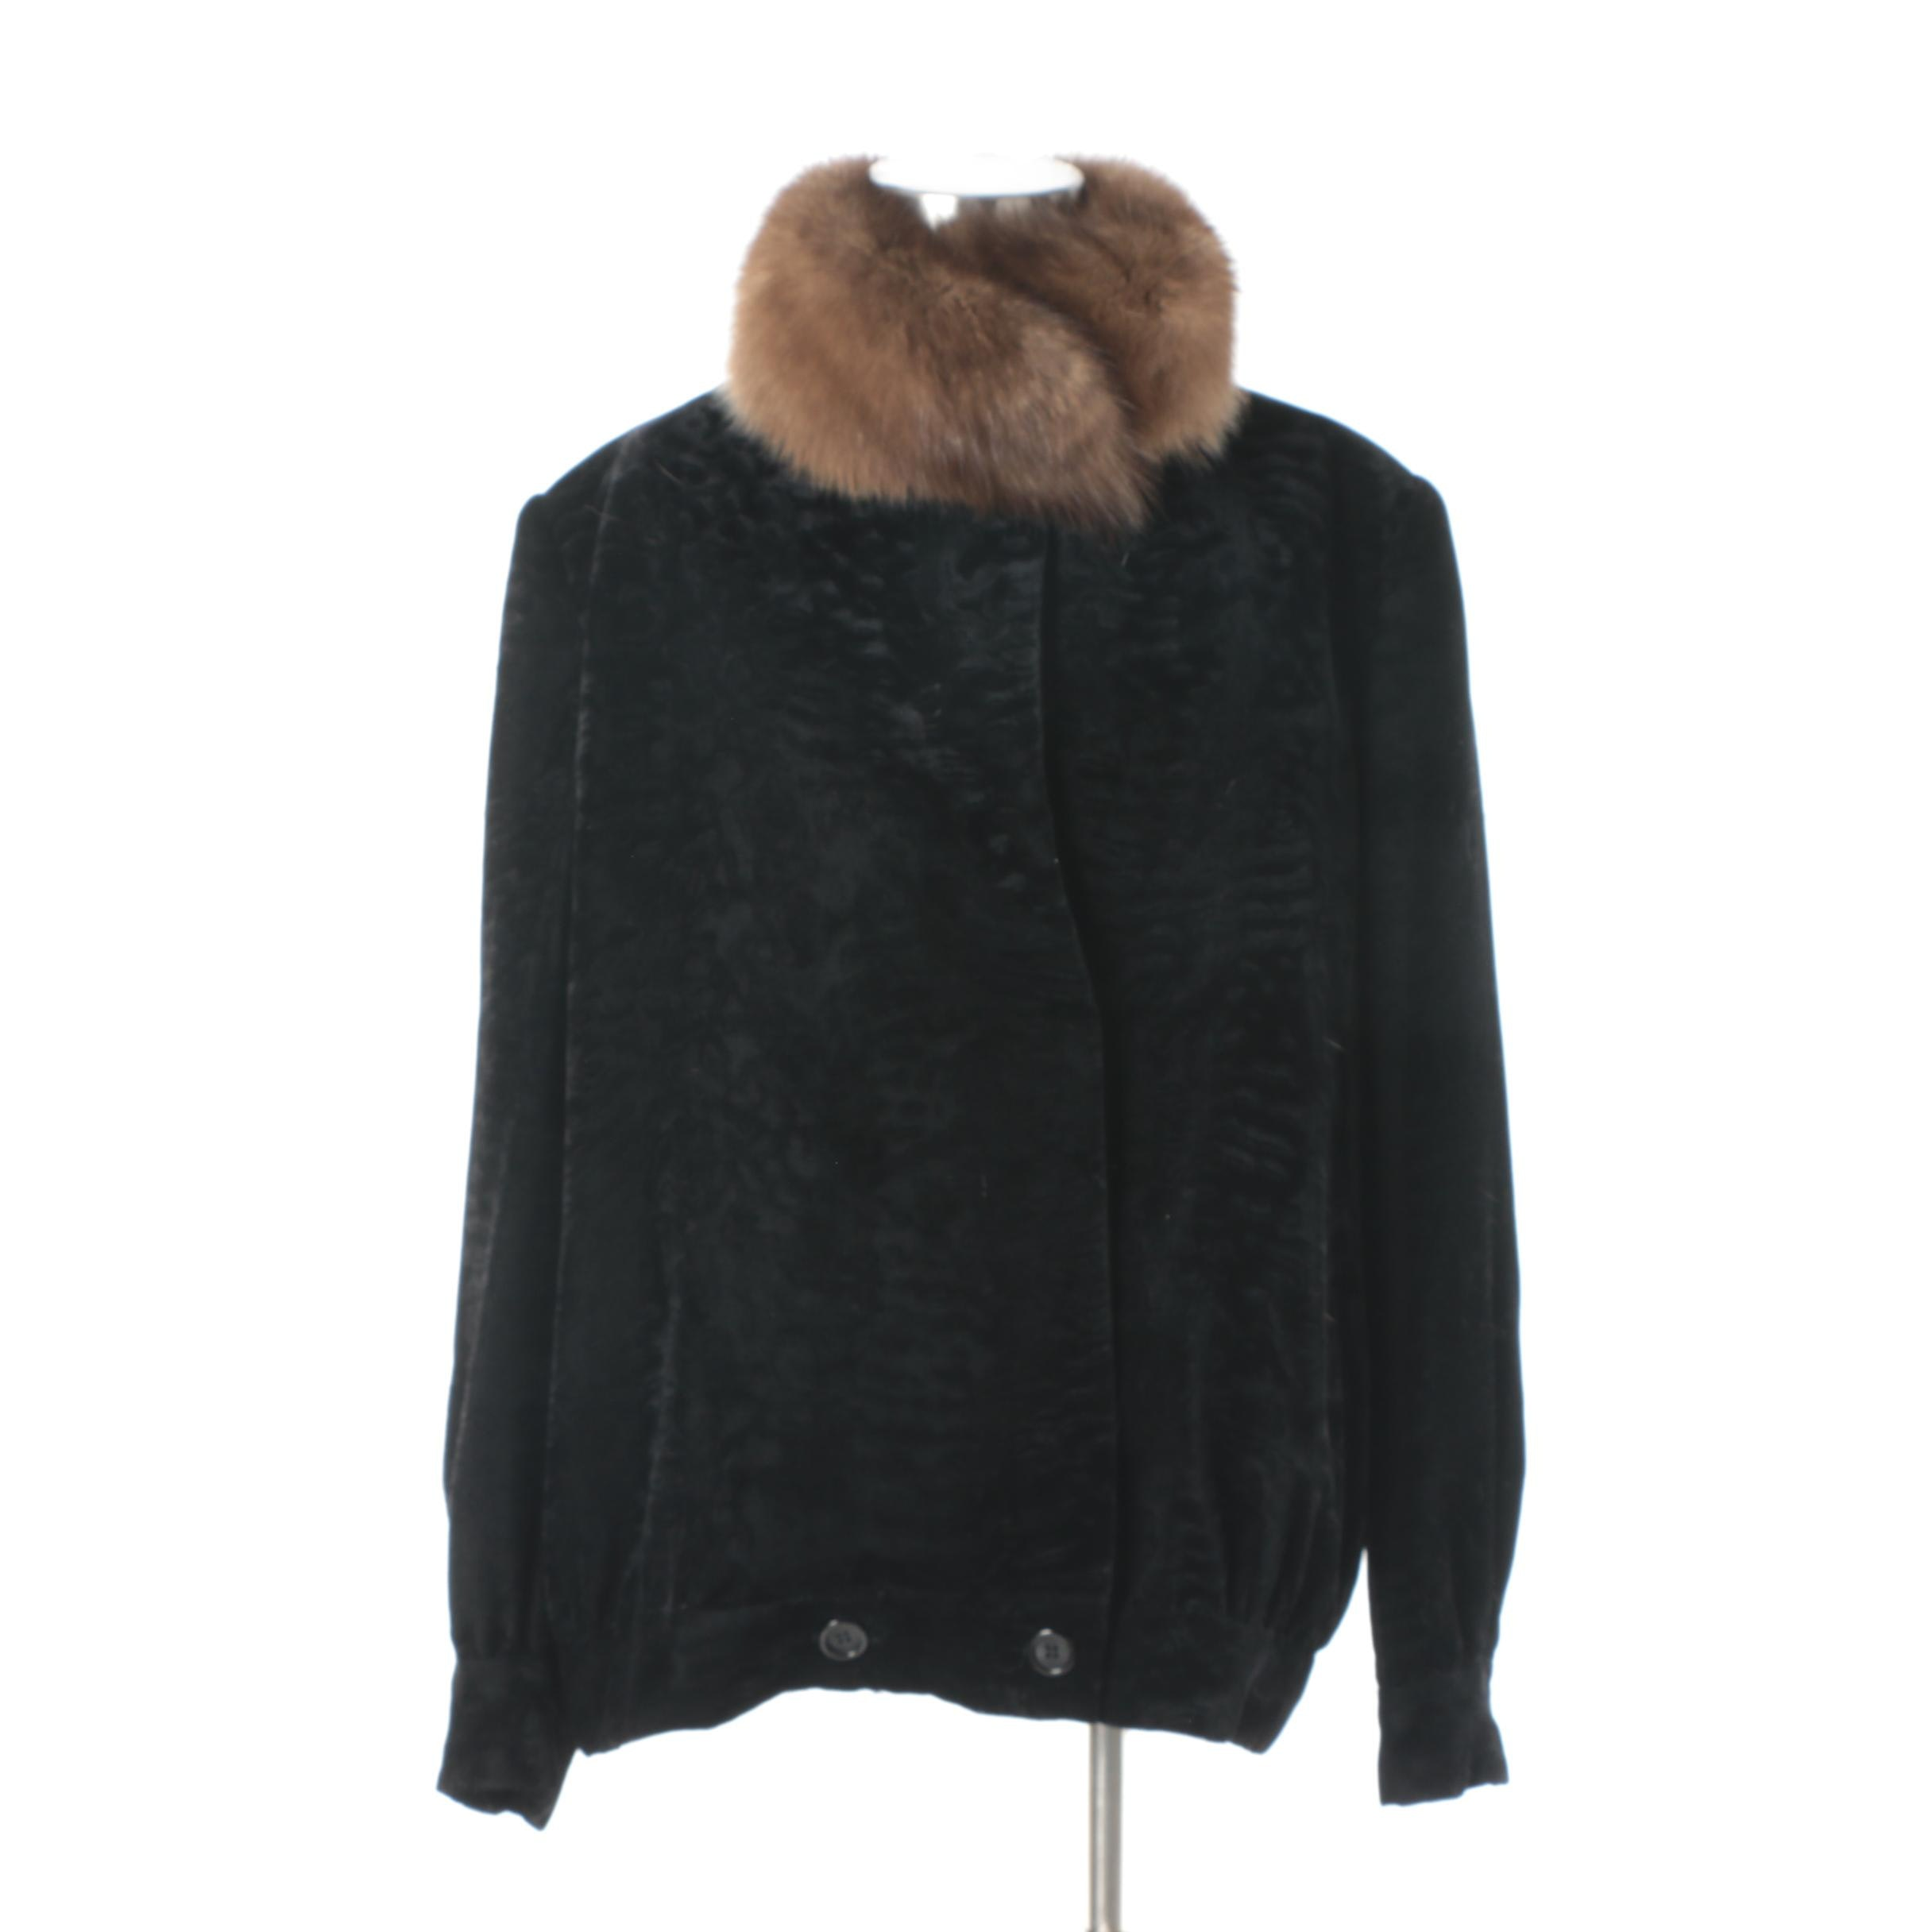 Bill Blass Black Velvet Jacket with Fox Fur Collar